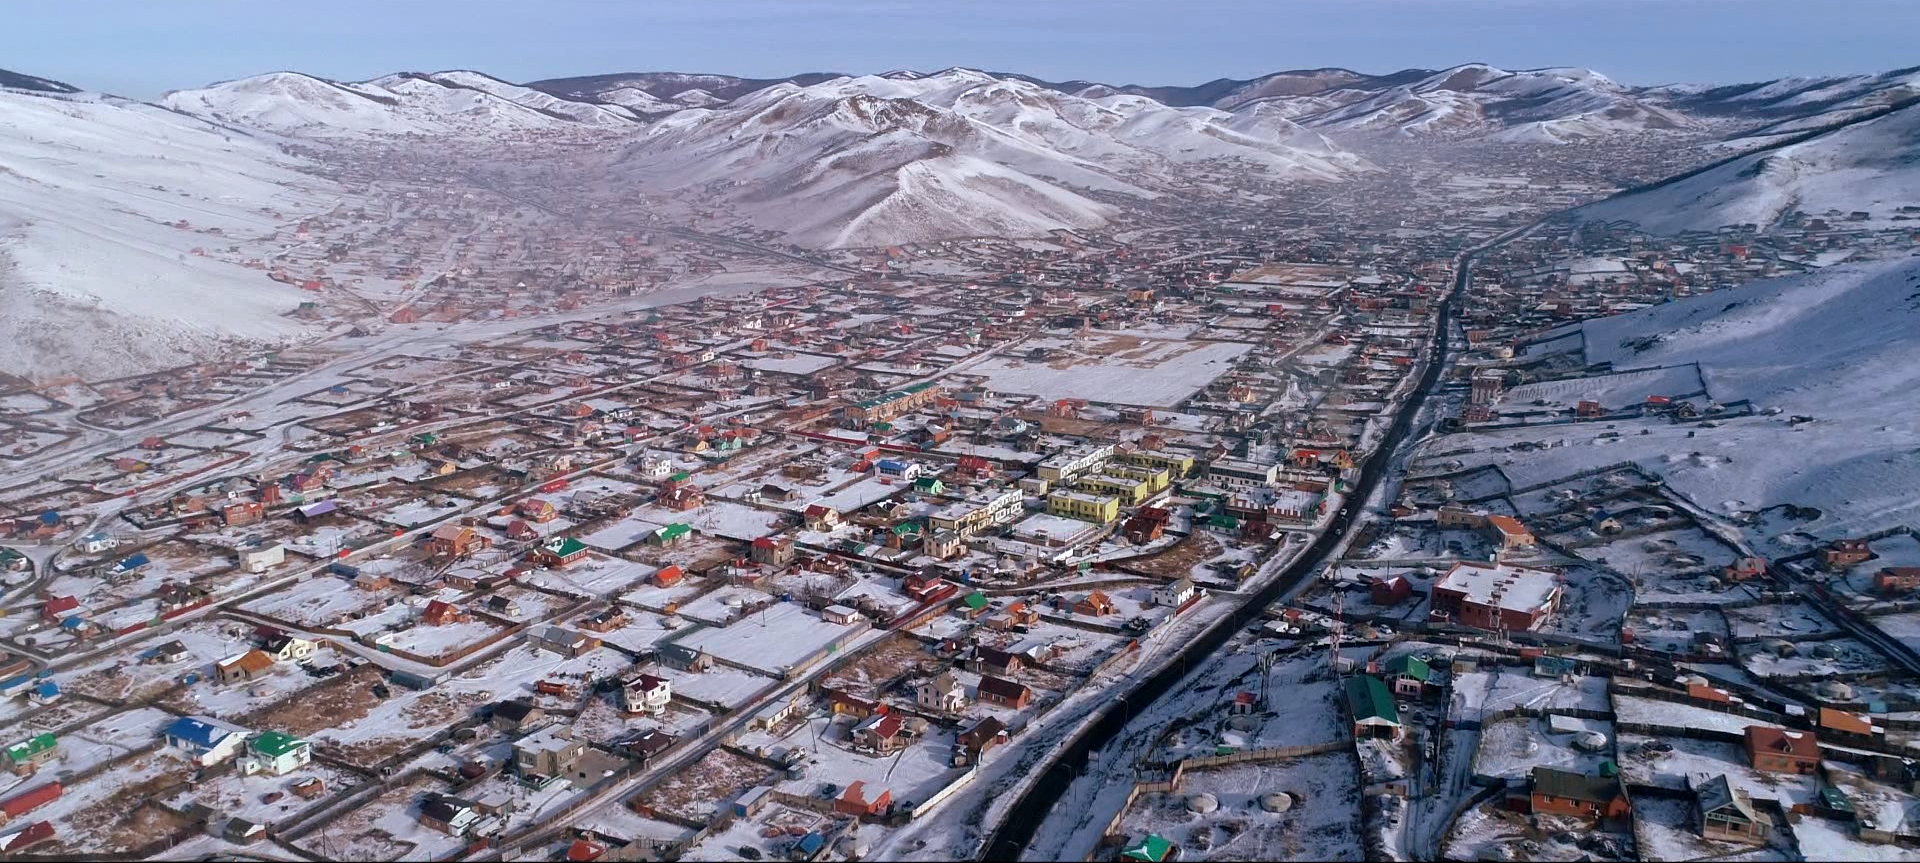 Earth construction techniques are being revived in the housing sector in Ulaanbaatar